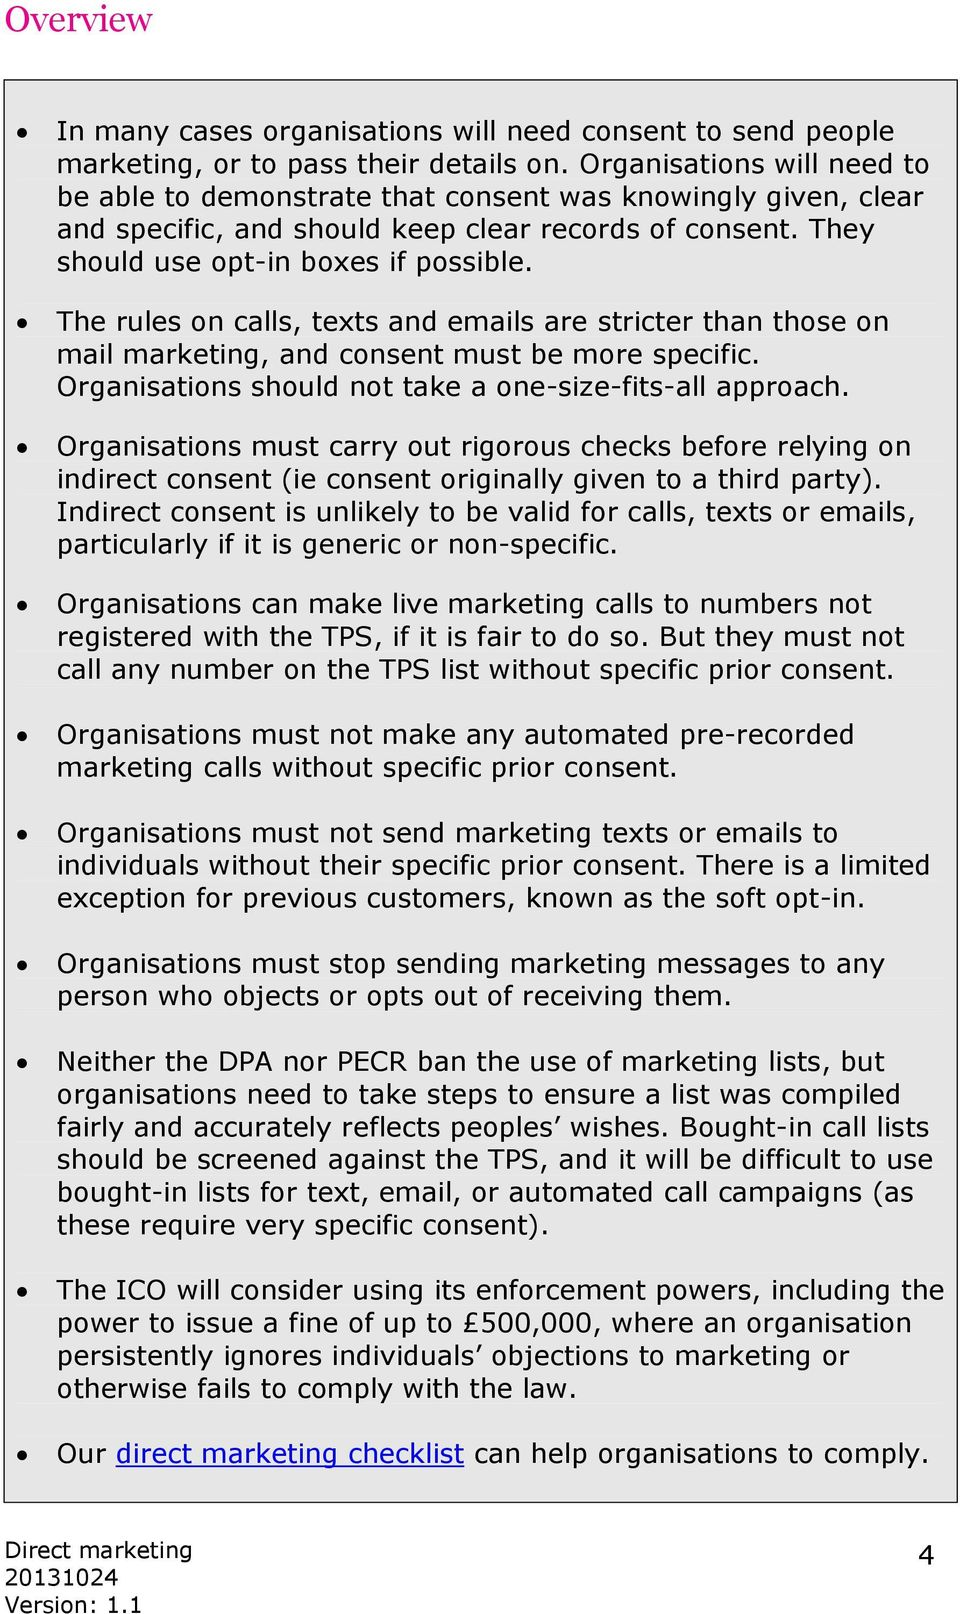 The rules on calls, texts and emails are stricter than those on mail marketing, and consent must be more specific. Organisations should not take a one-size-fits-all approach.